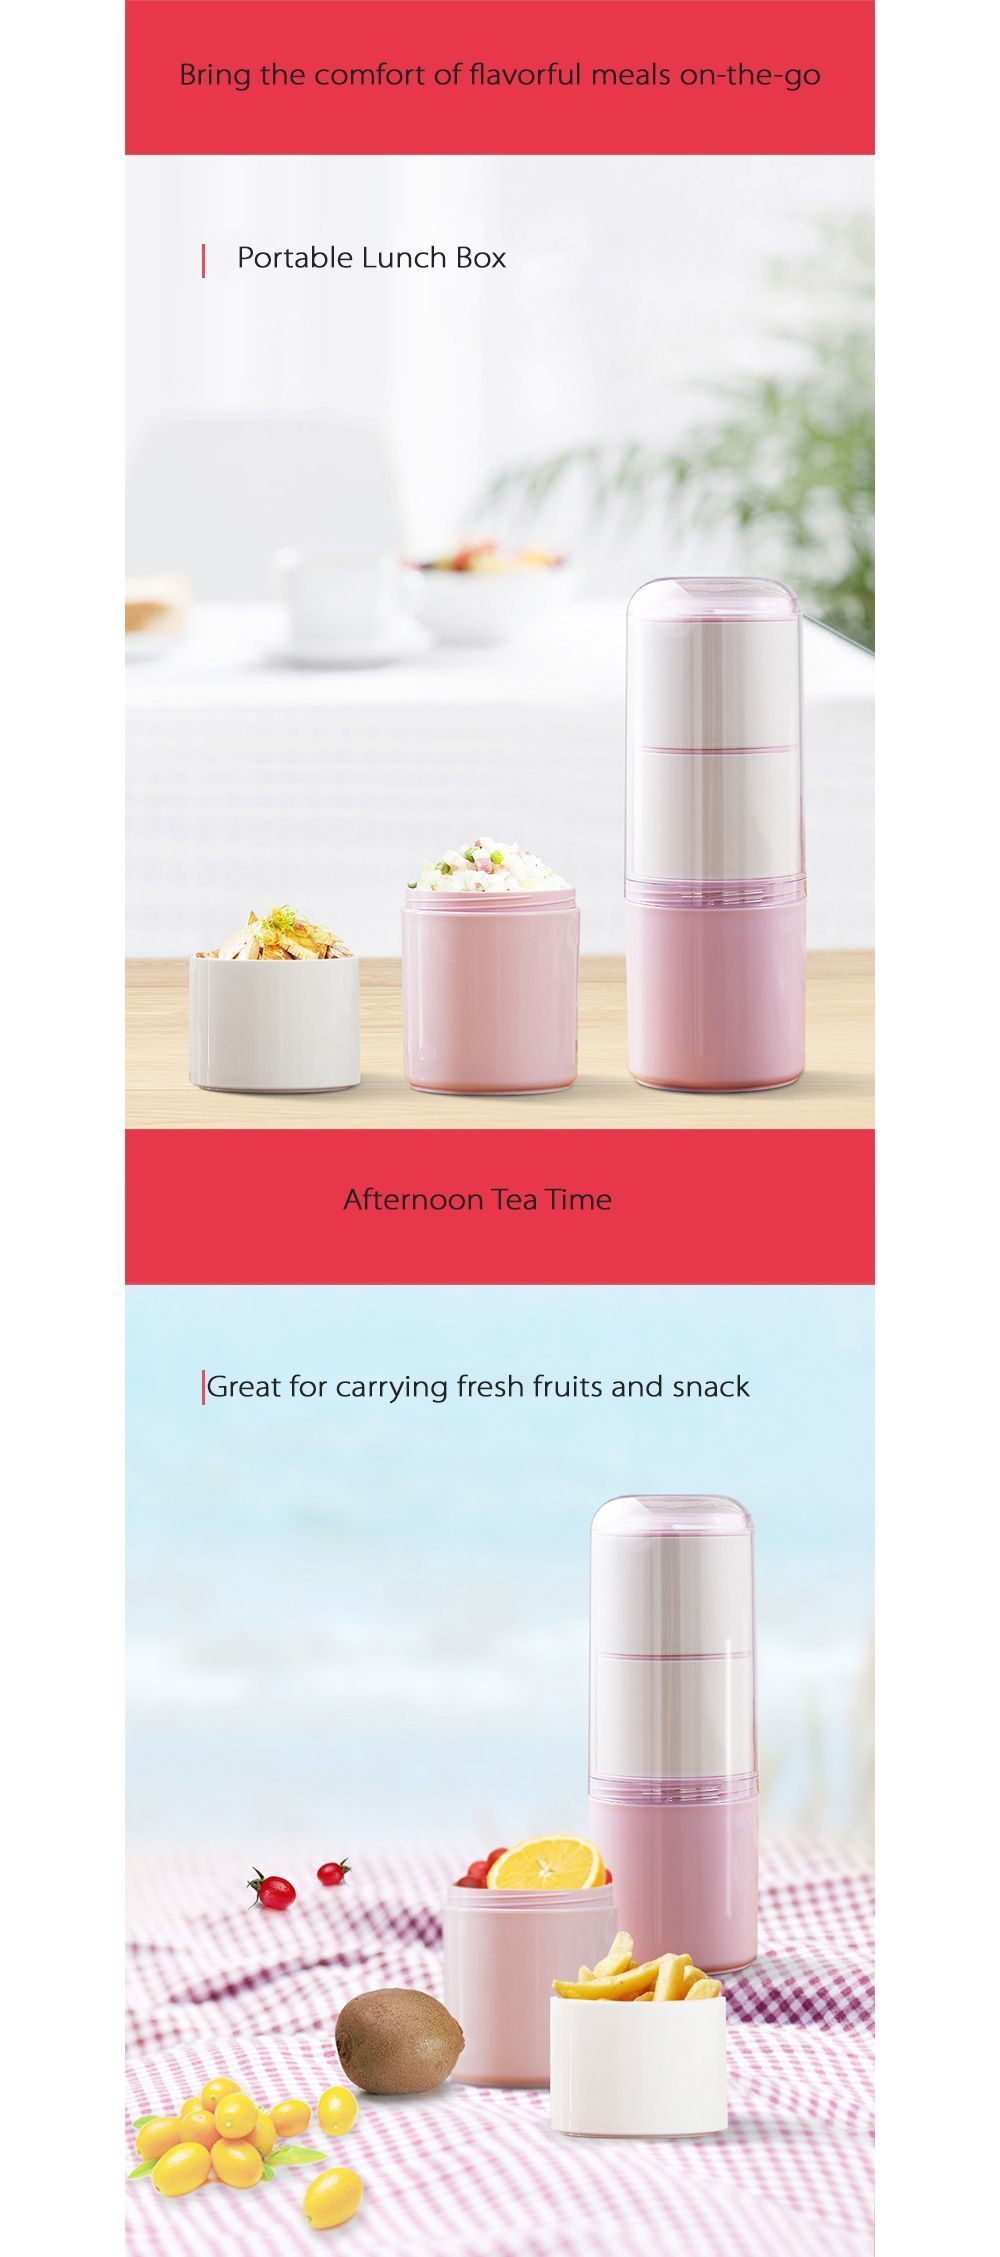 Creative Capsule Bento Box Have a Hot Lunch